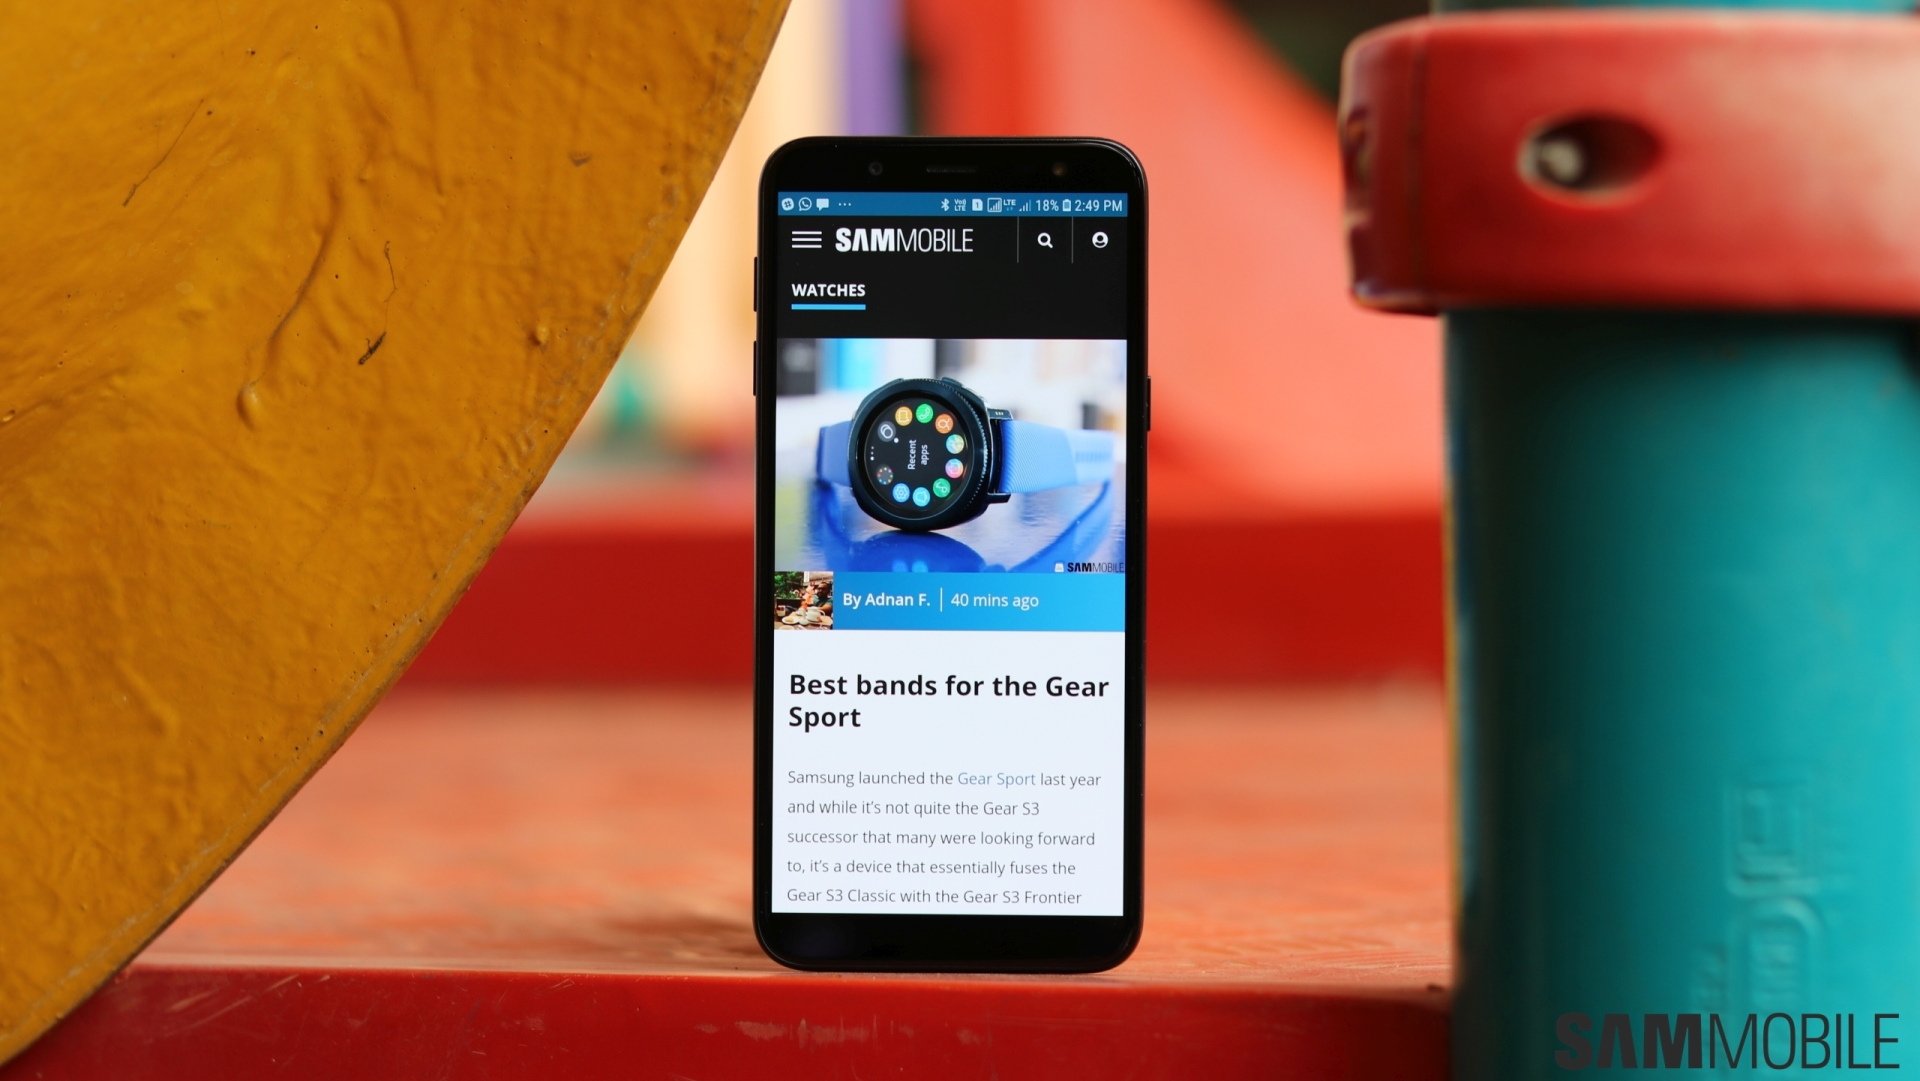 Samsung Galaxy J6 review: Greater than the sum of its parts - SamMobile